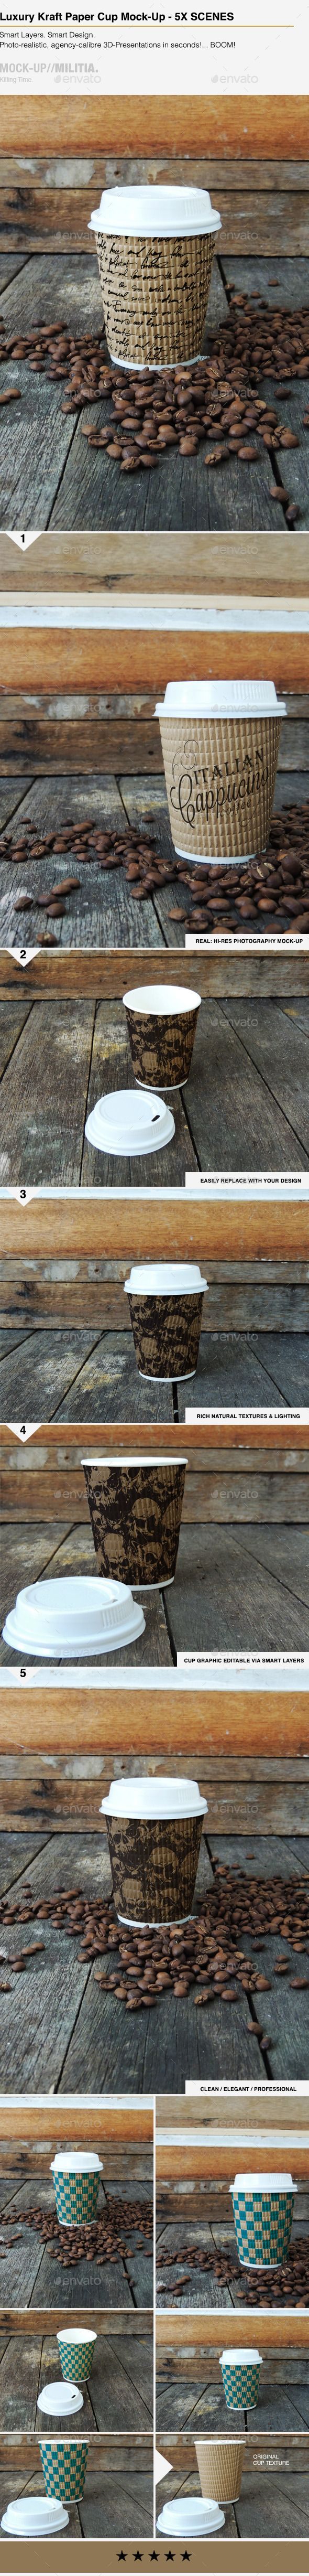 Luxury Kraft Paper - Disposable Coffee Cup Mock-Up   Download: http://graphicriver.net/item/luxury-kraft-paper-disposable-coffee-cup-mockup/9171934?ref=ksioks